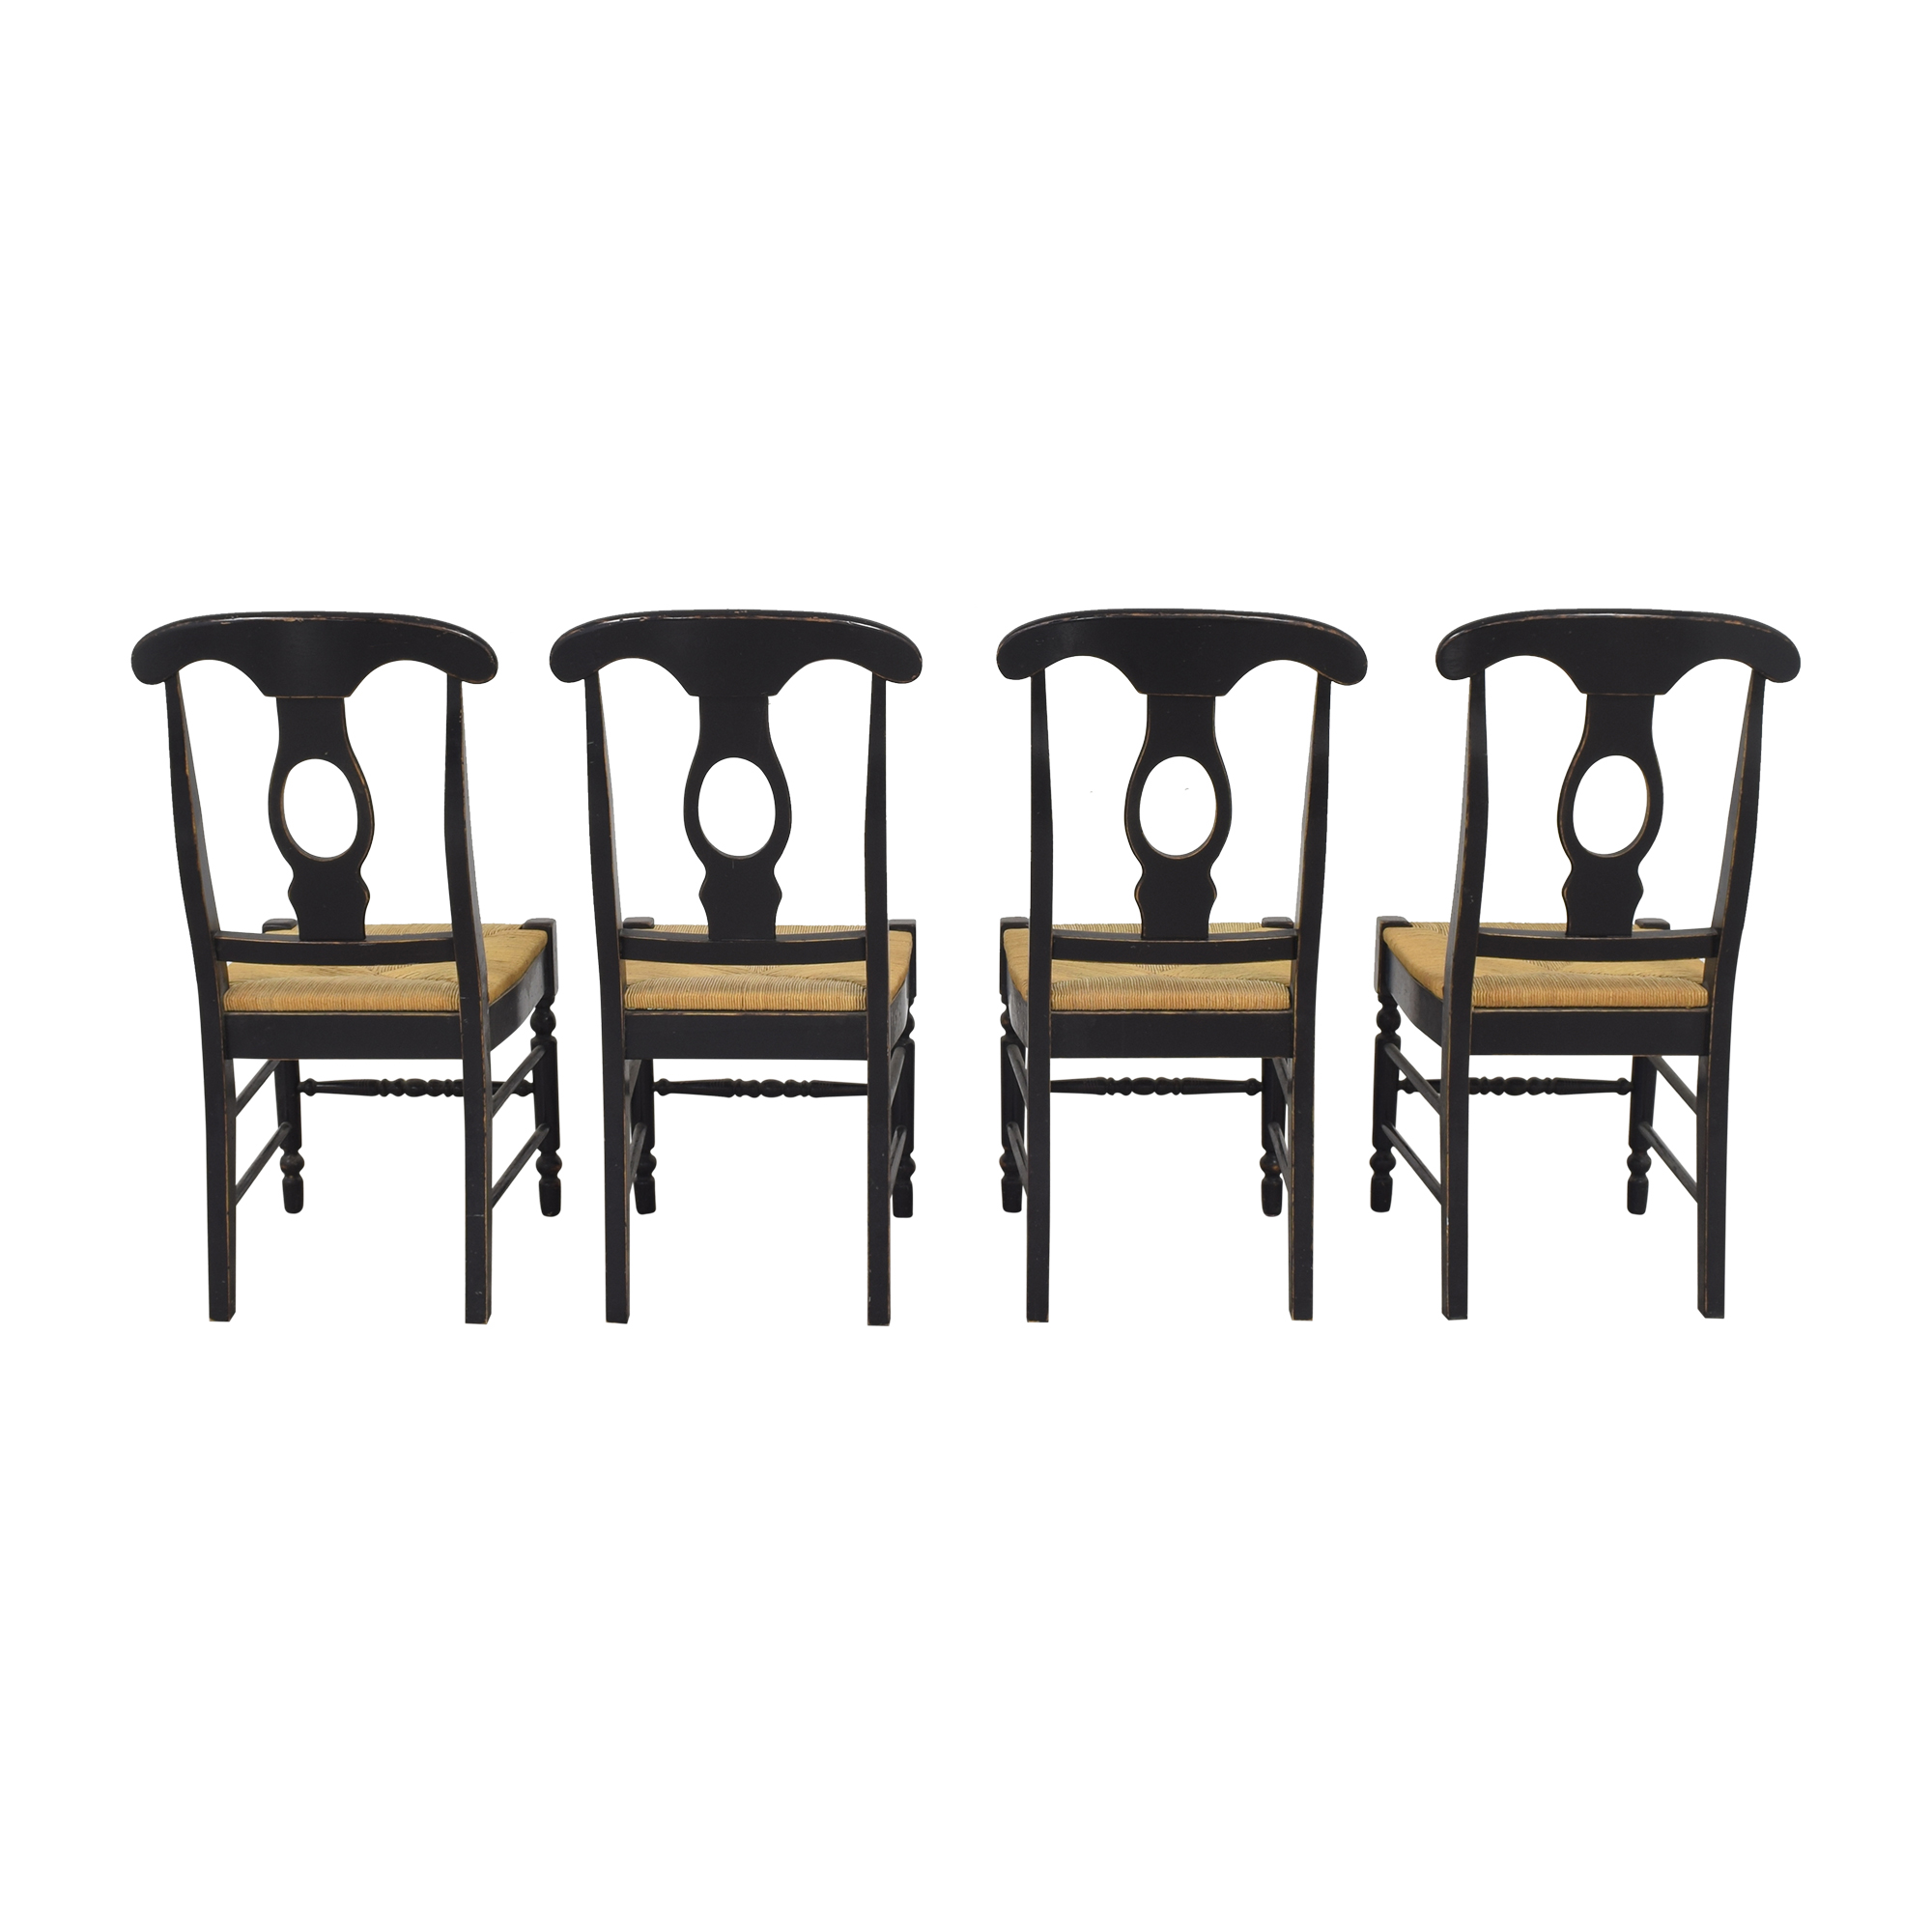 Country-Style Dining Chairs price